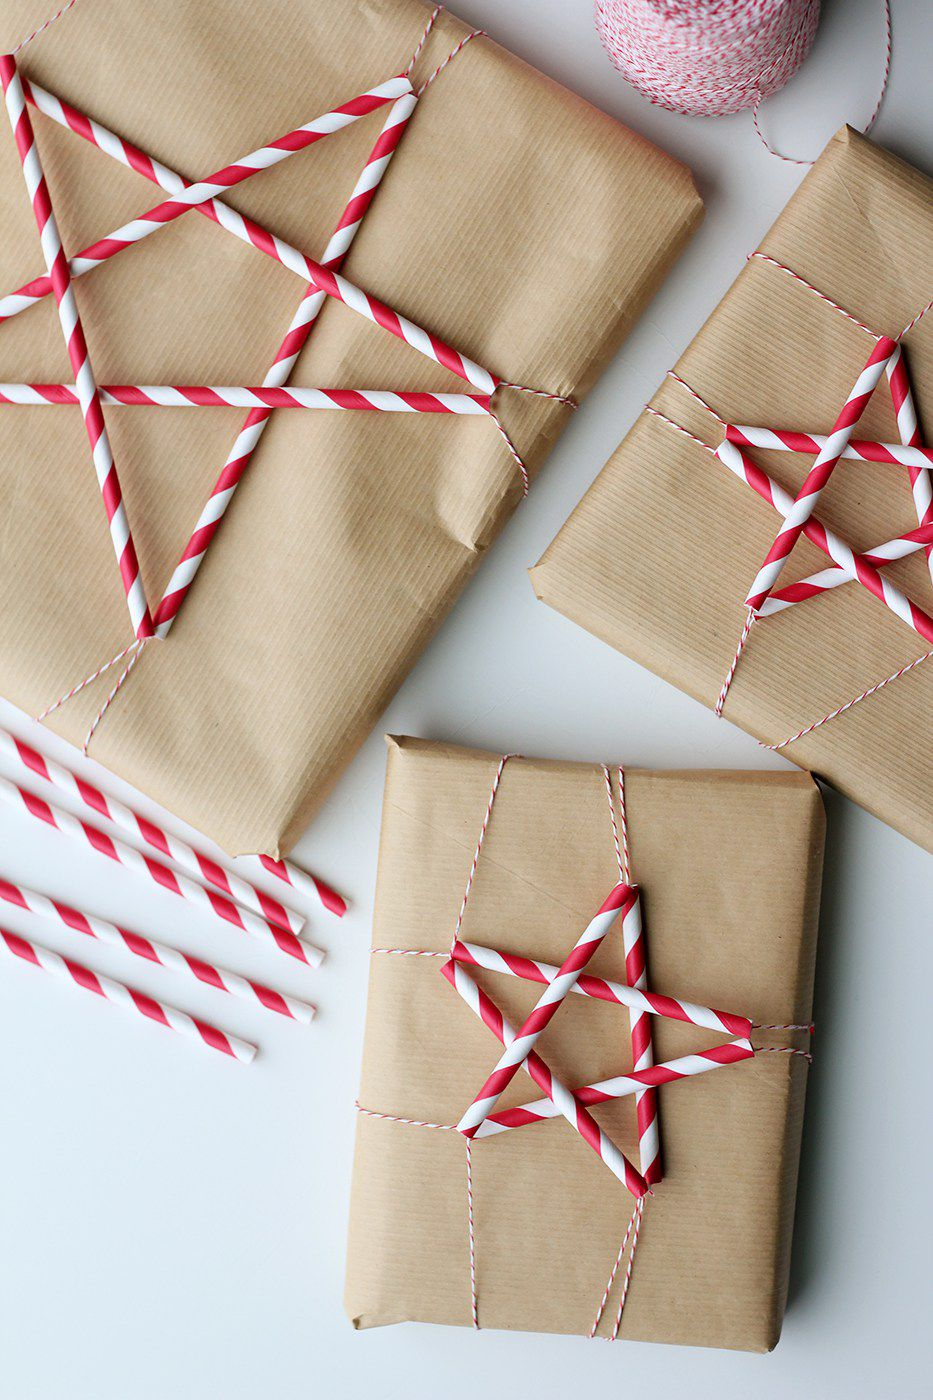 Make reuse crafts with wrapping paper leftover 39 Unique Gift Wrapping Ideas For Christmas How To Wrap Holiday